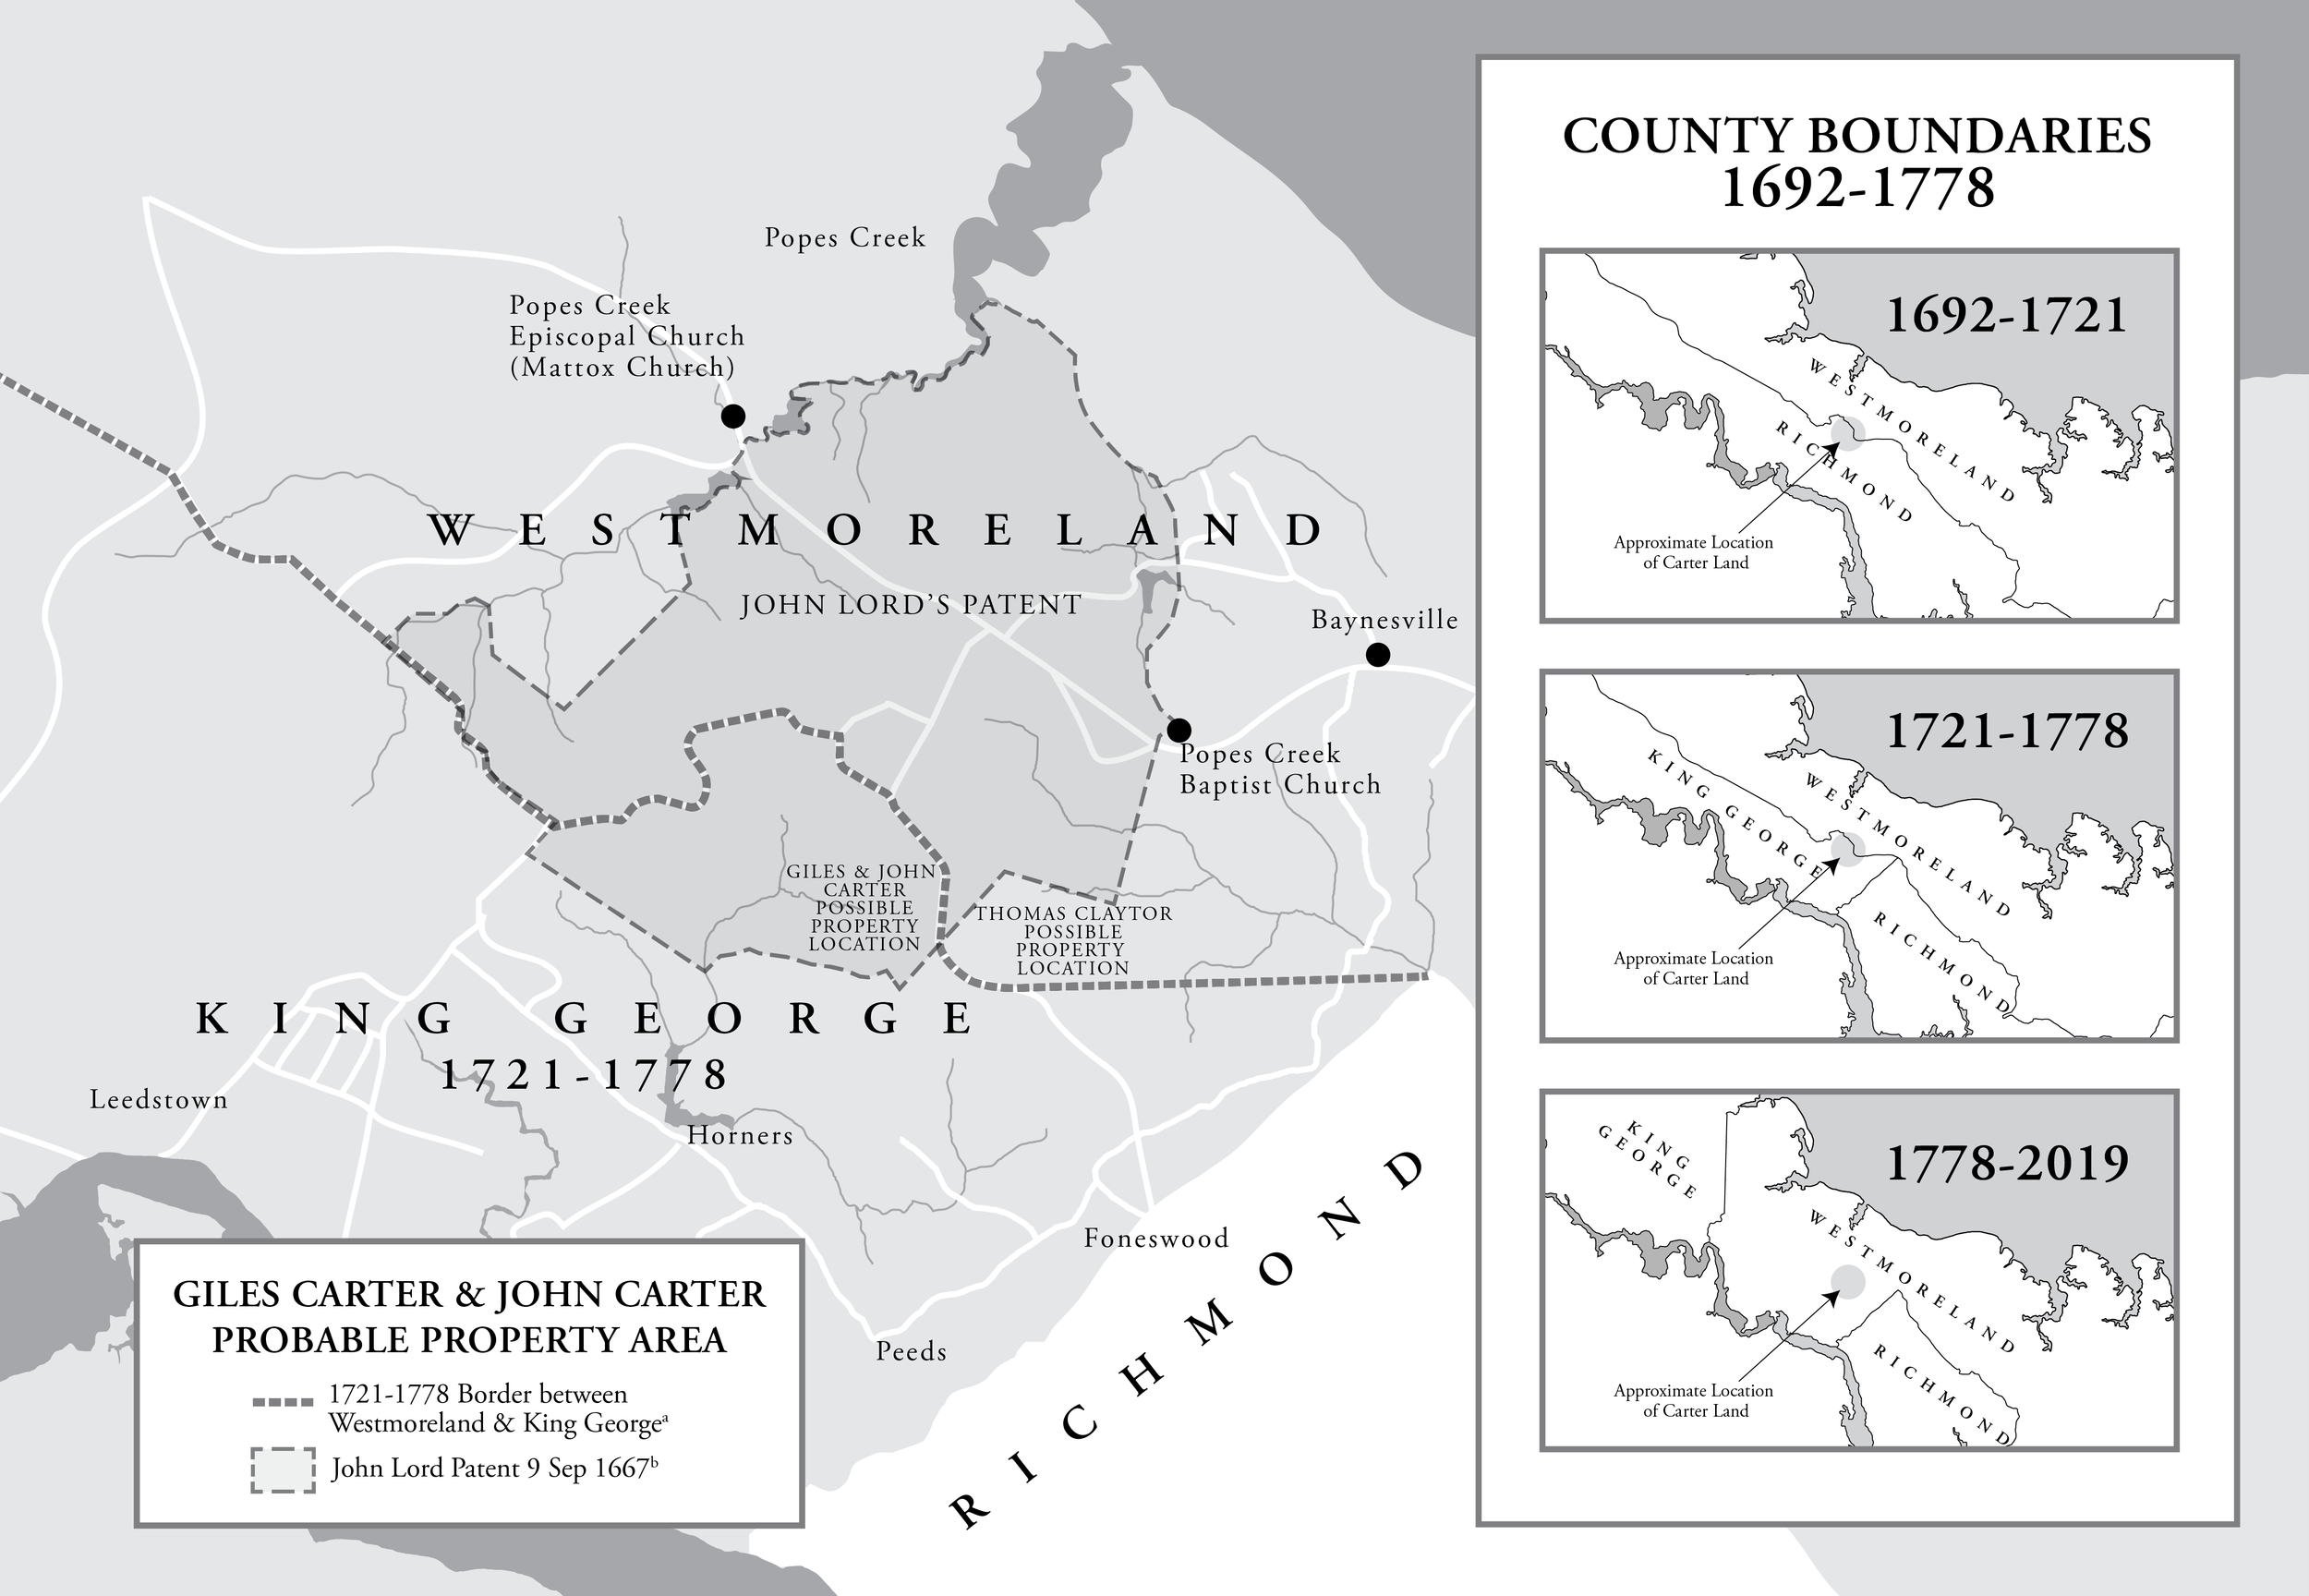 Historical Maps - This map shows the historical boundaries of Westmoreland County, Virginia. Used in a Proof Argument, the map helped the reader understand the boundaries of the county in relationship to the property of the subject. View Map